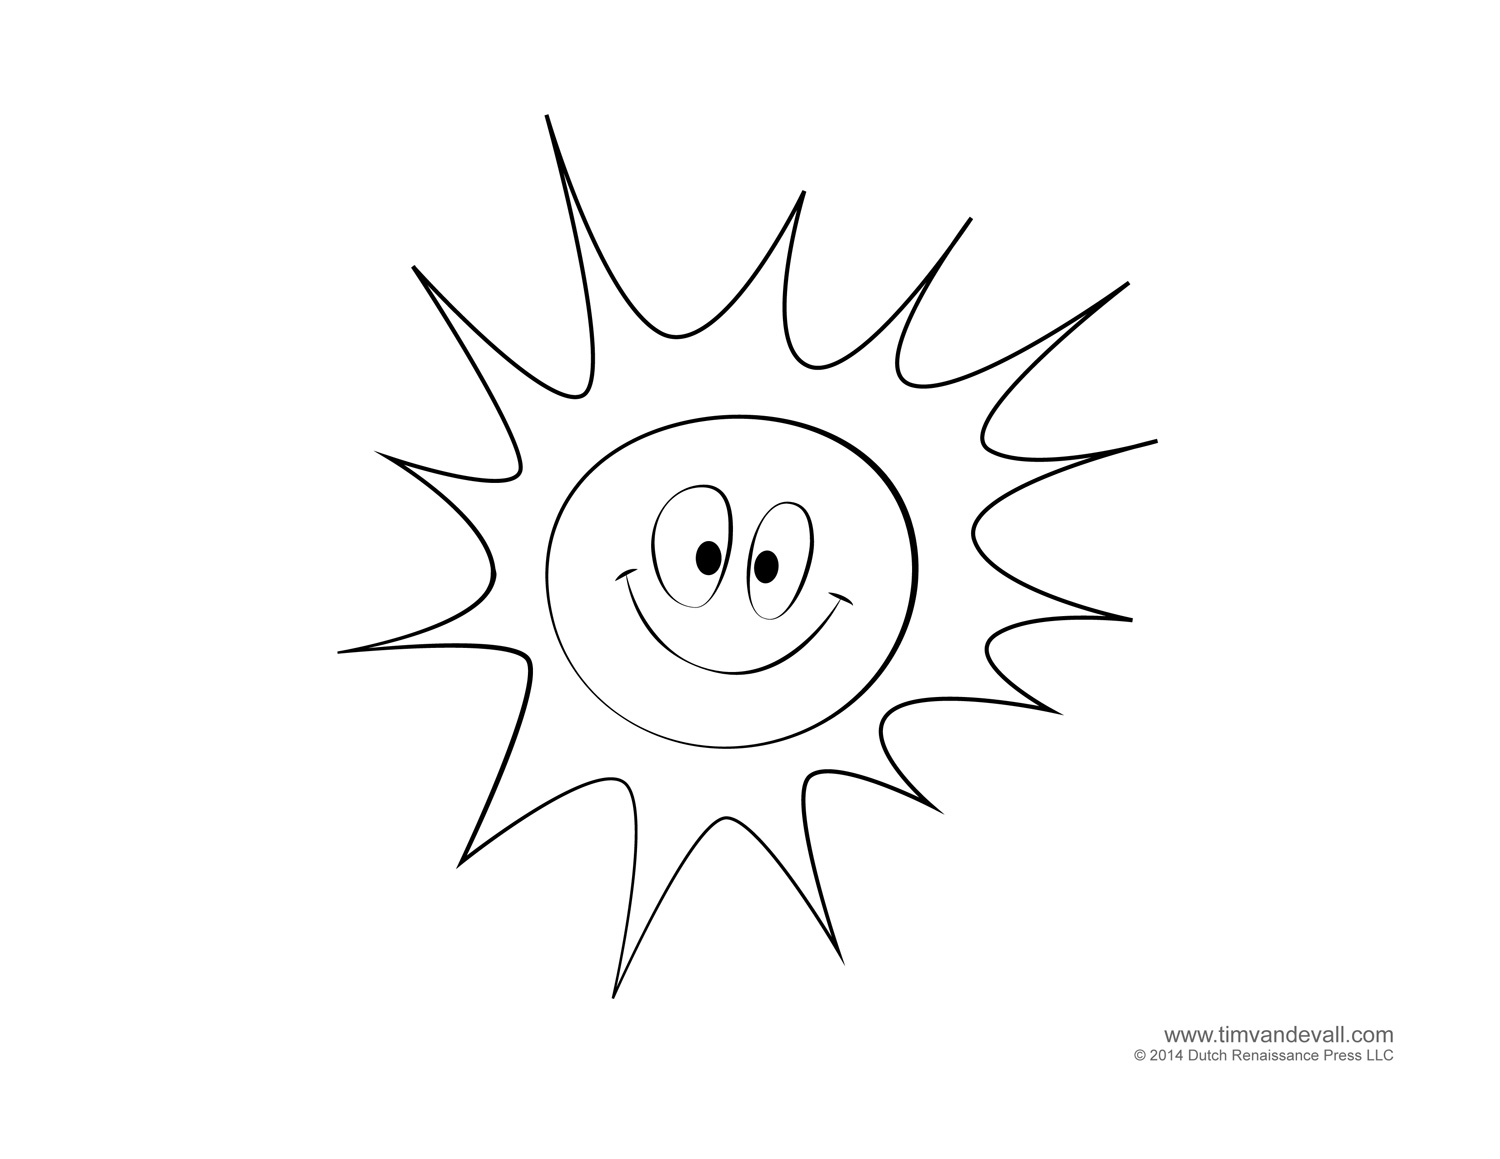 The Best Free Weather Drawing Images Download From 50 Free Drawings